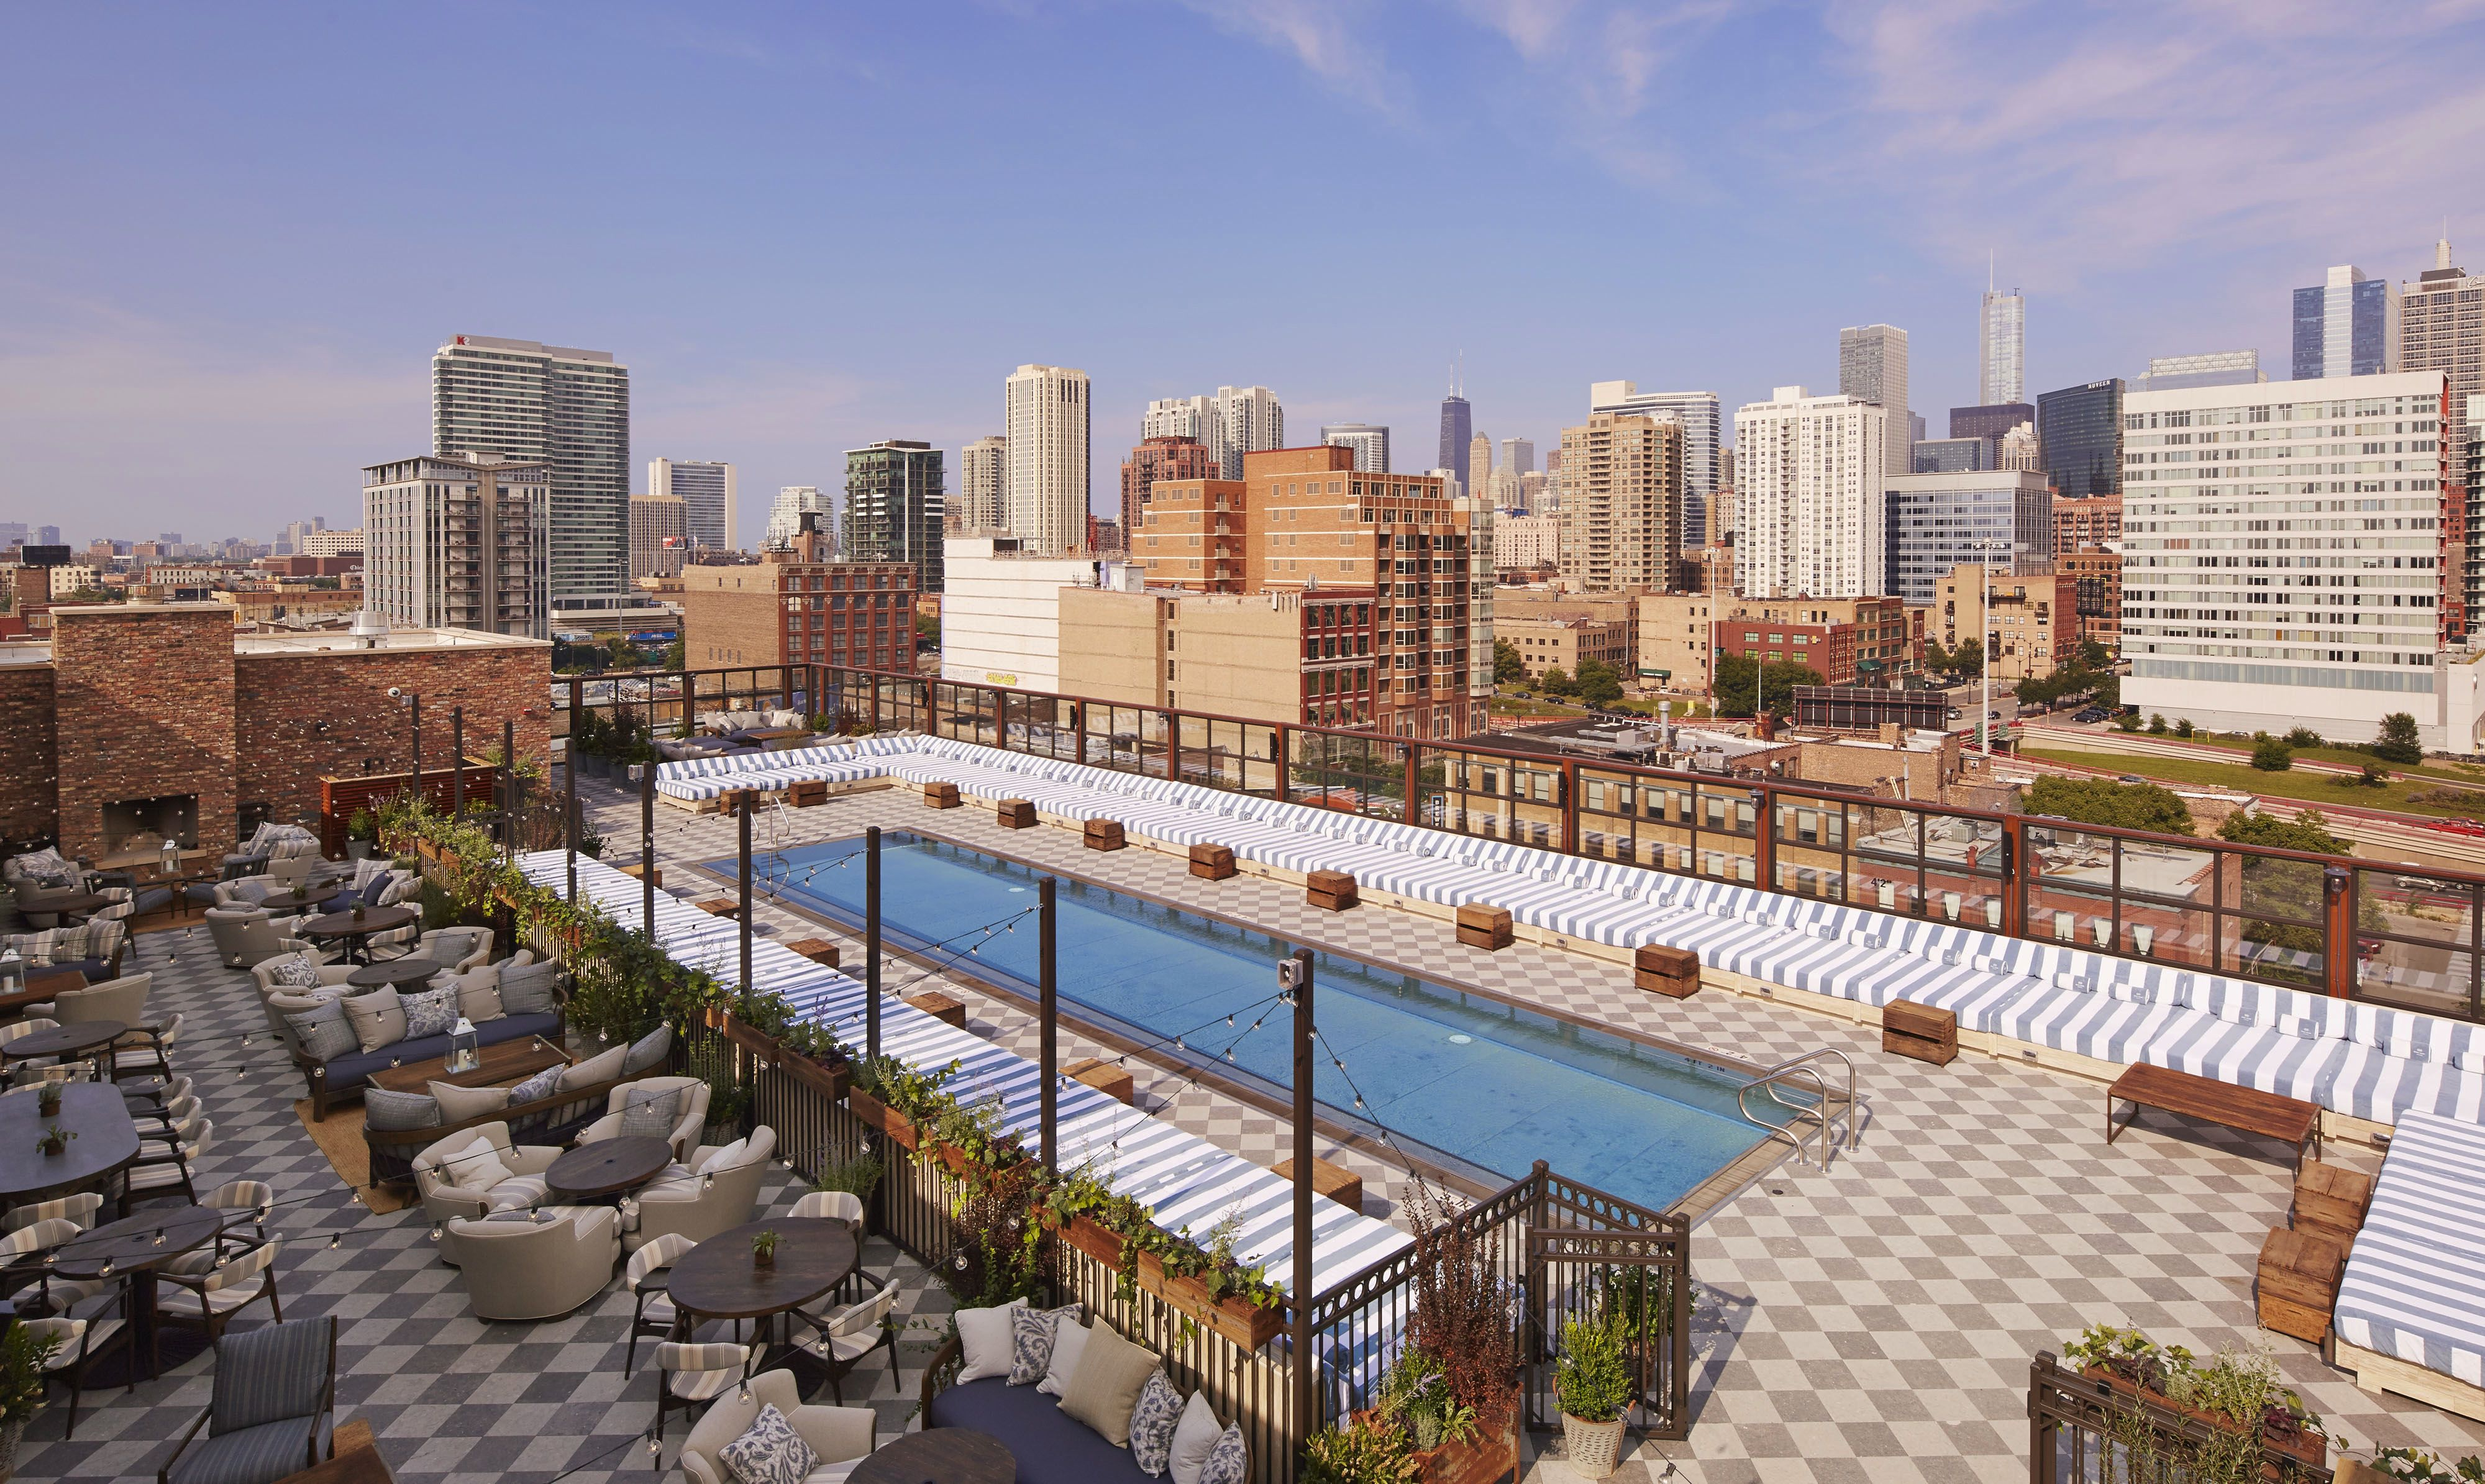 The 10 best swimming pools in chicago - Hotel new york swimming pool roof ...